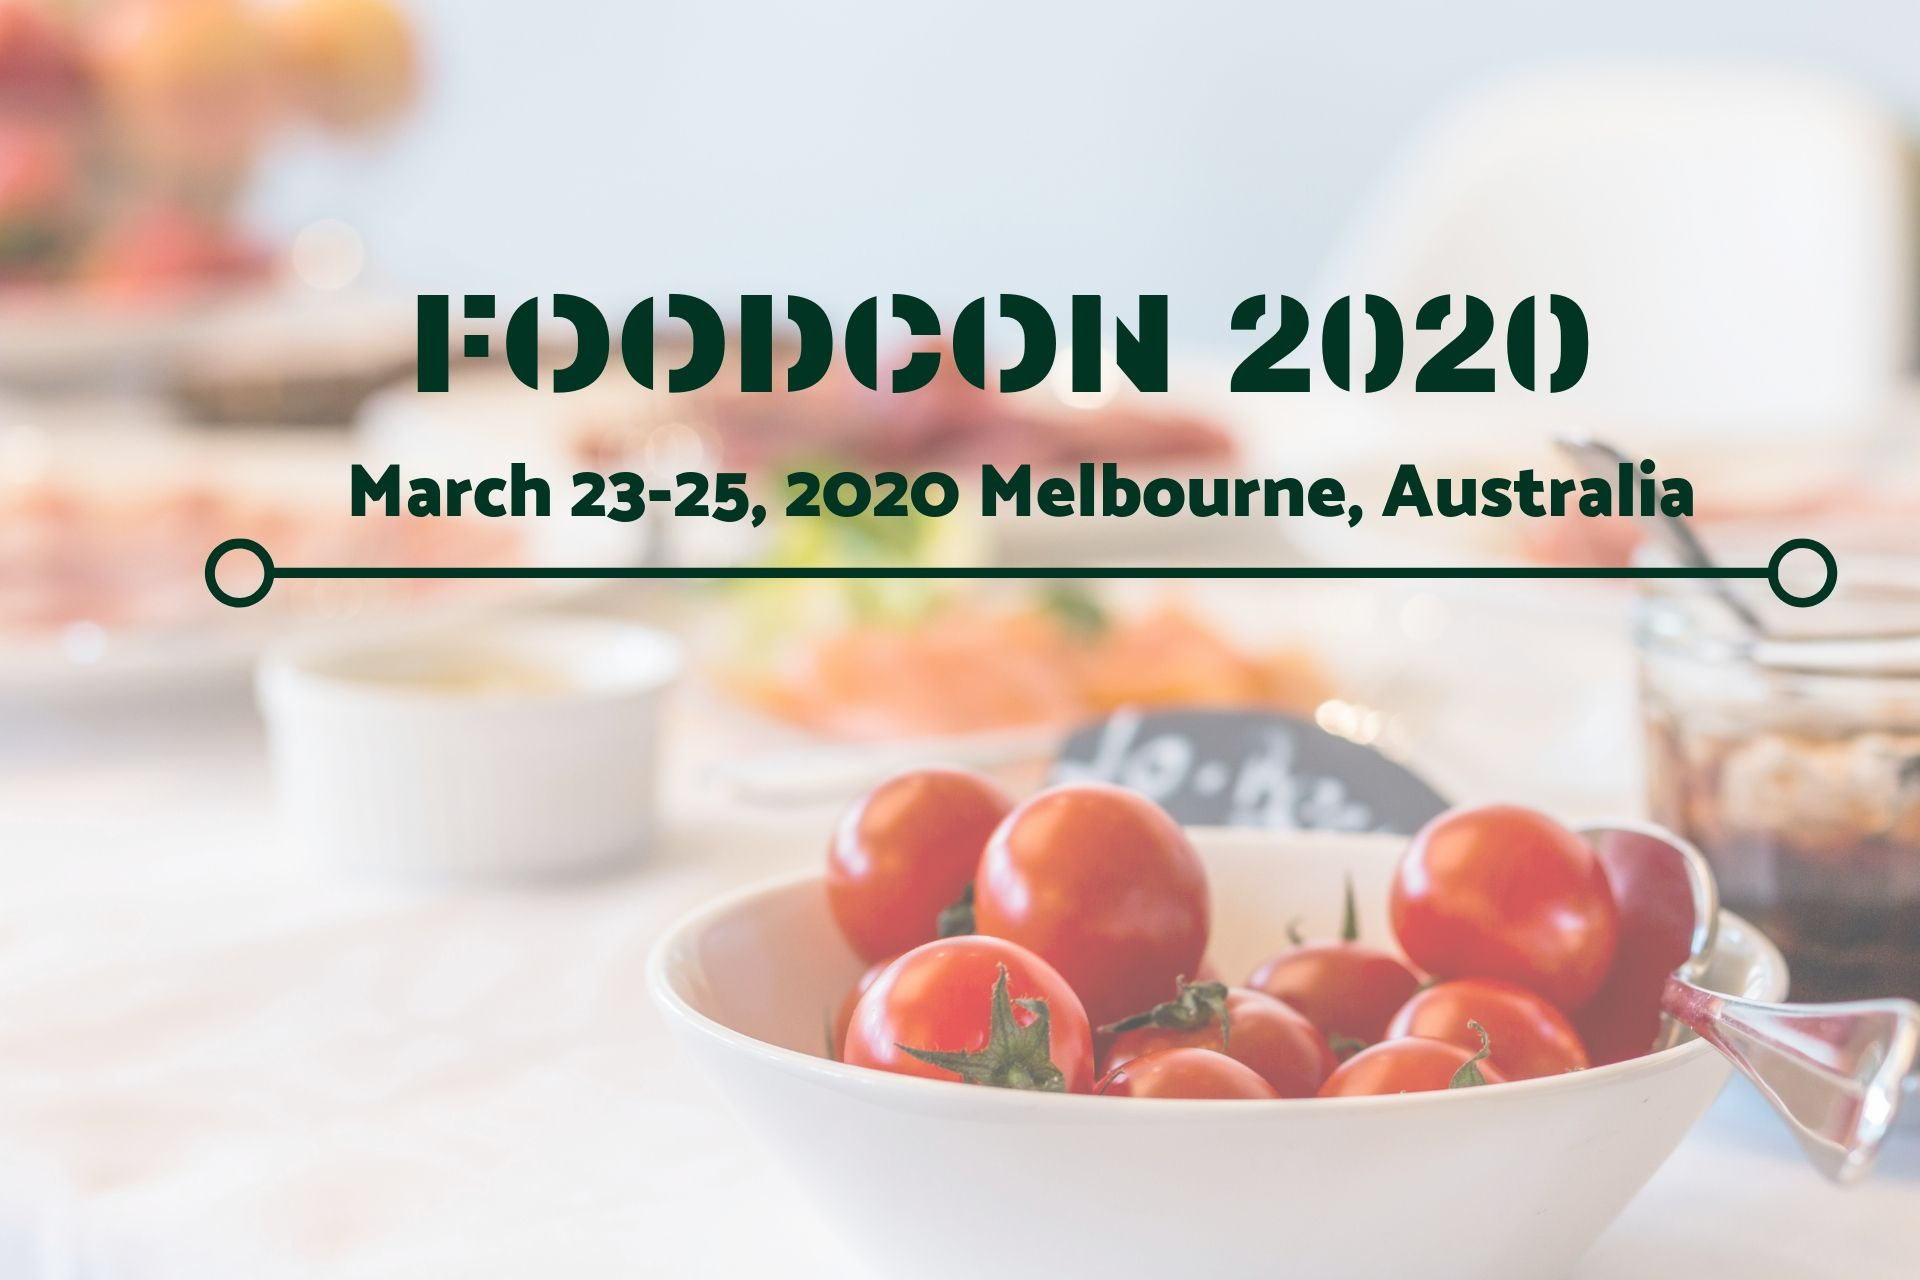 The Annual conference on Food Science and Technology - AgFunderNews